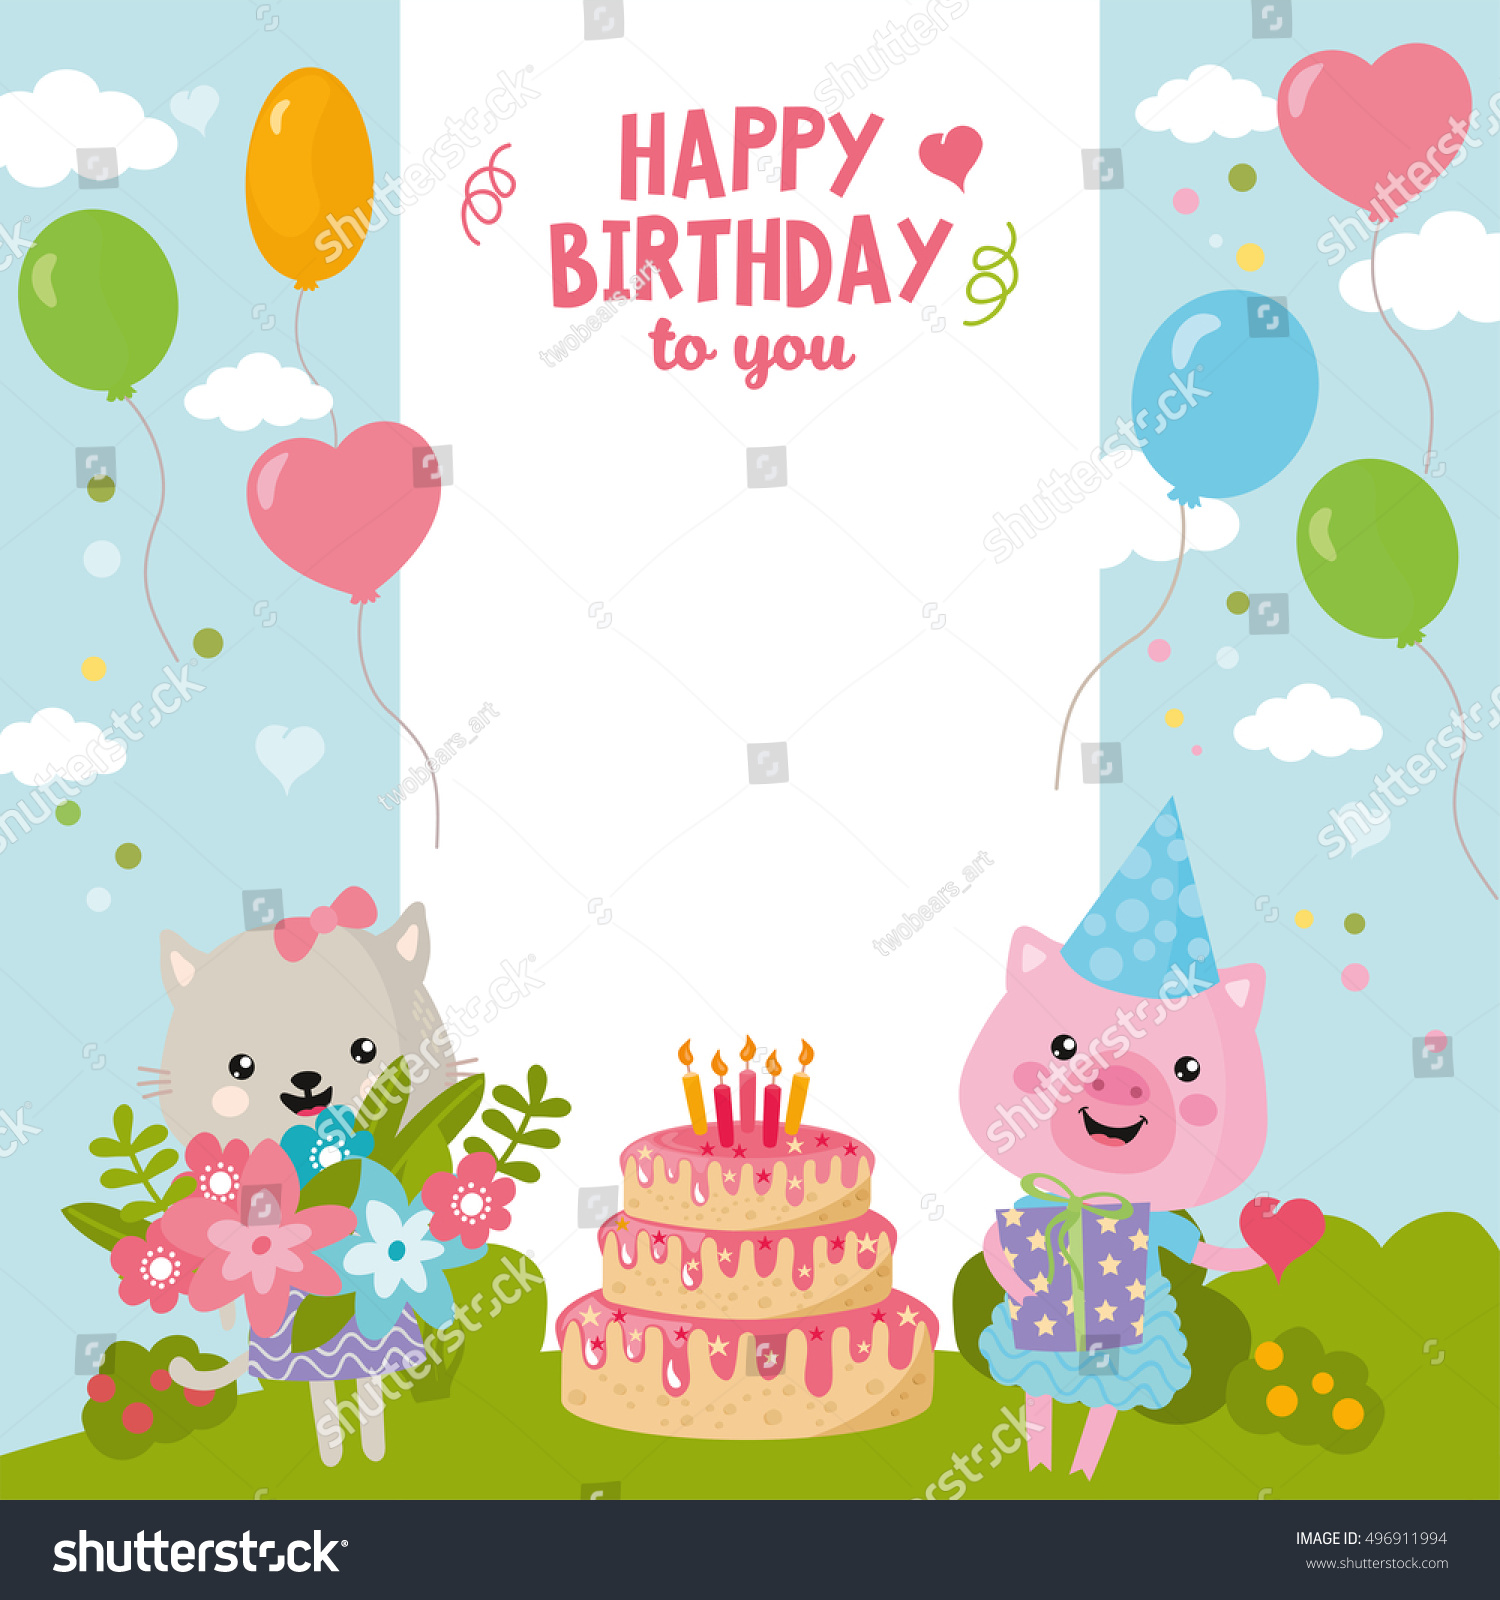 greeting card design cute cat and pig happy birthday greeting card design cute cat and pig happy birthday invitation template balloon and